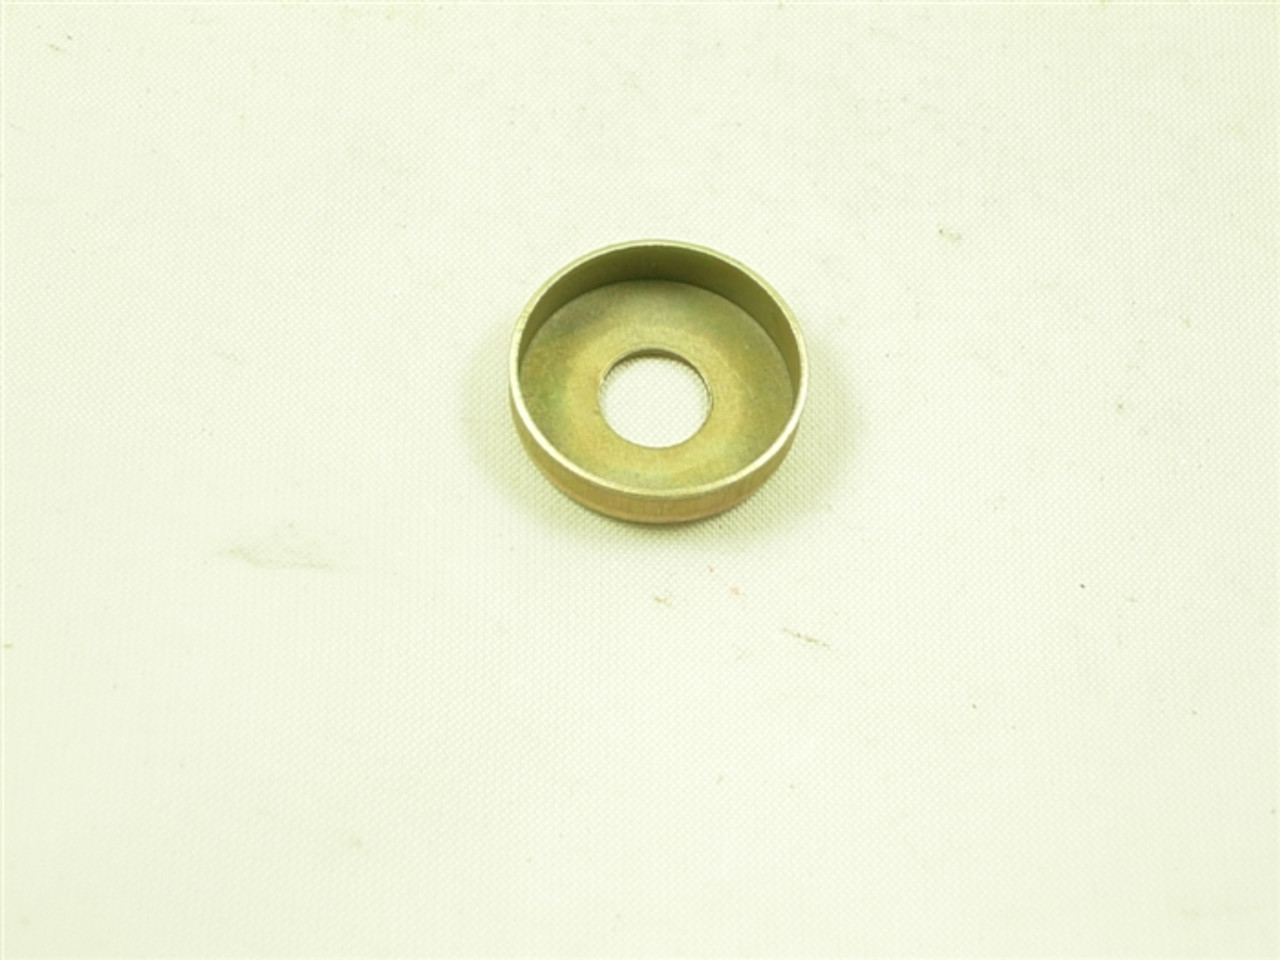 small flange washer 10222-a13-6